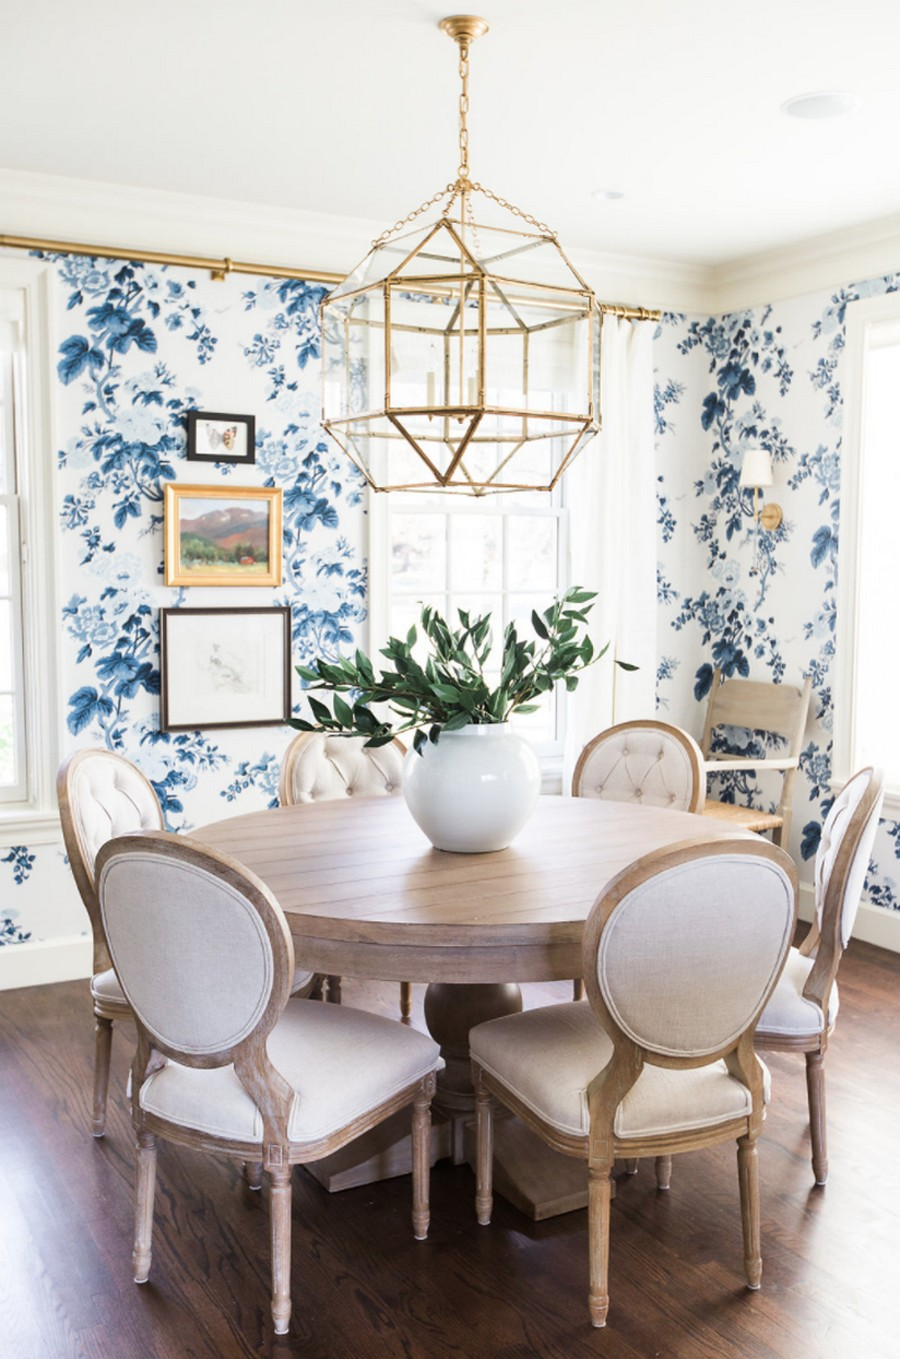 These Blue Dining Room Designs Are Super Hot On Pinterest! Blue Dining Room Designs These Blue Dining Room Designs Are Super Hot On Pinterest! These Blue Dining Room Designs Are Super Hot On Pinterest 4